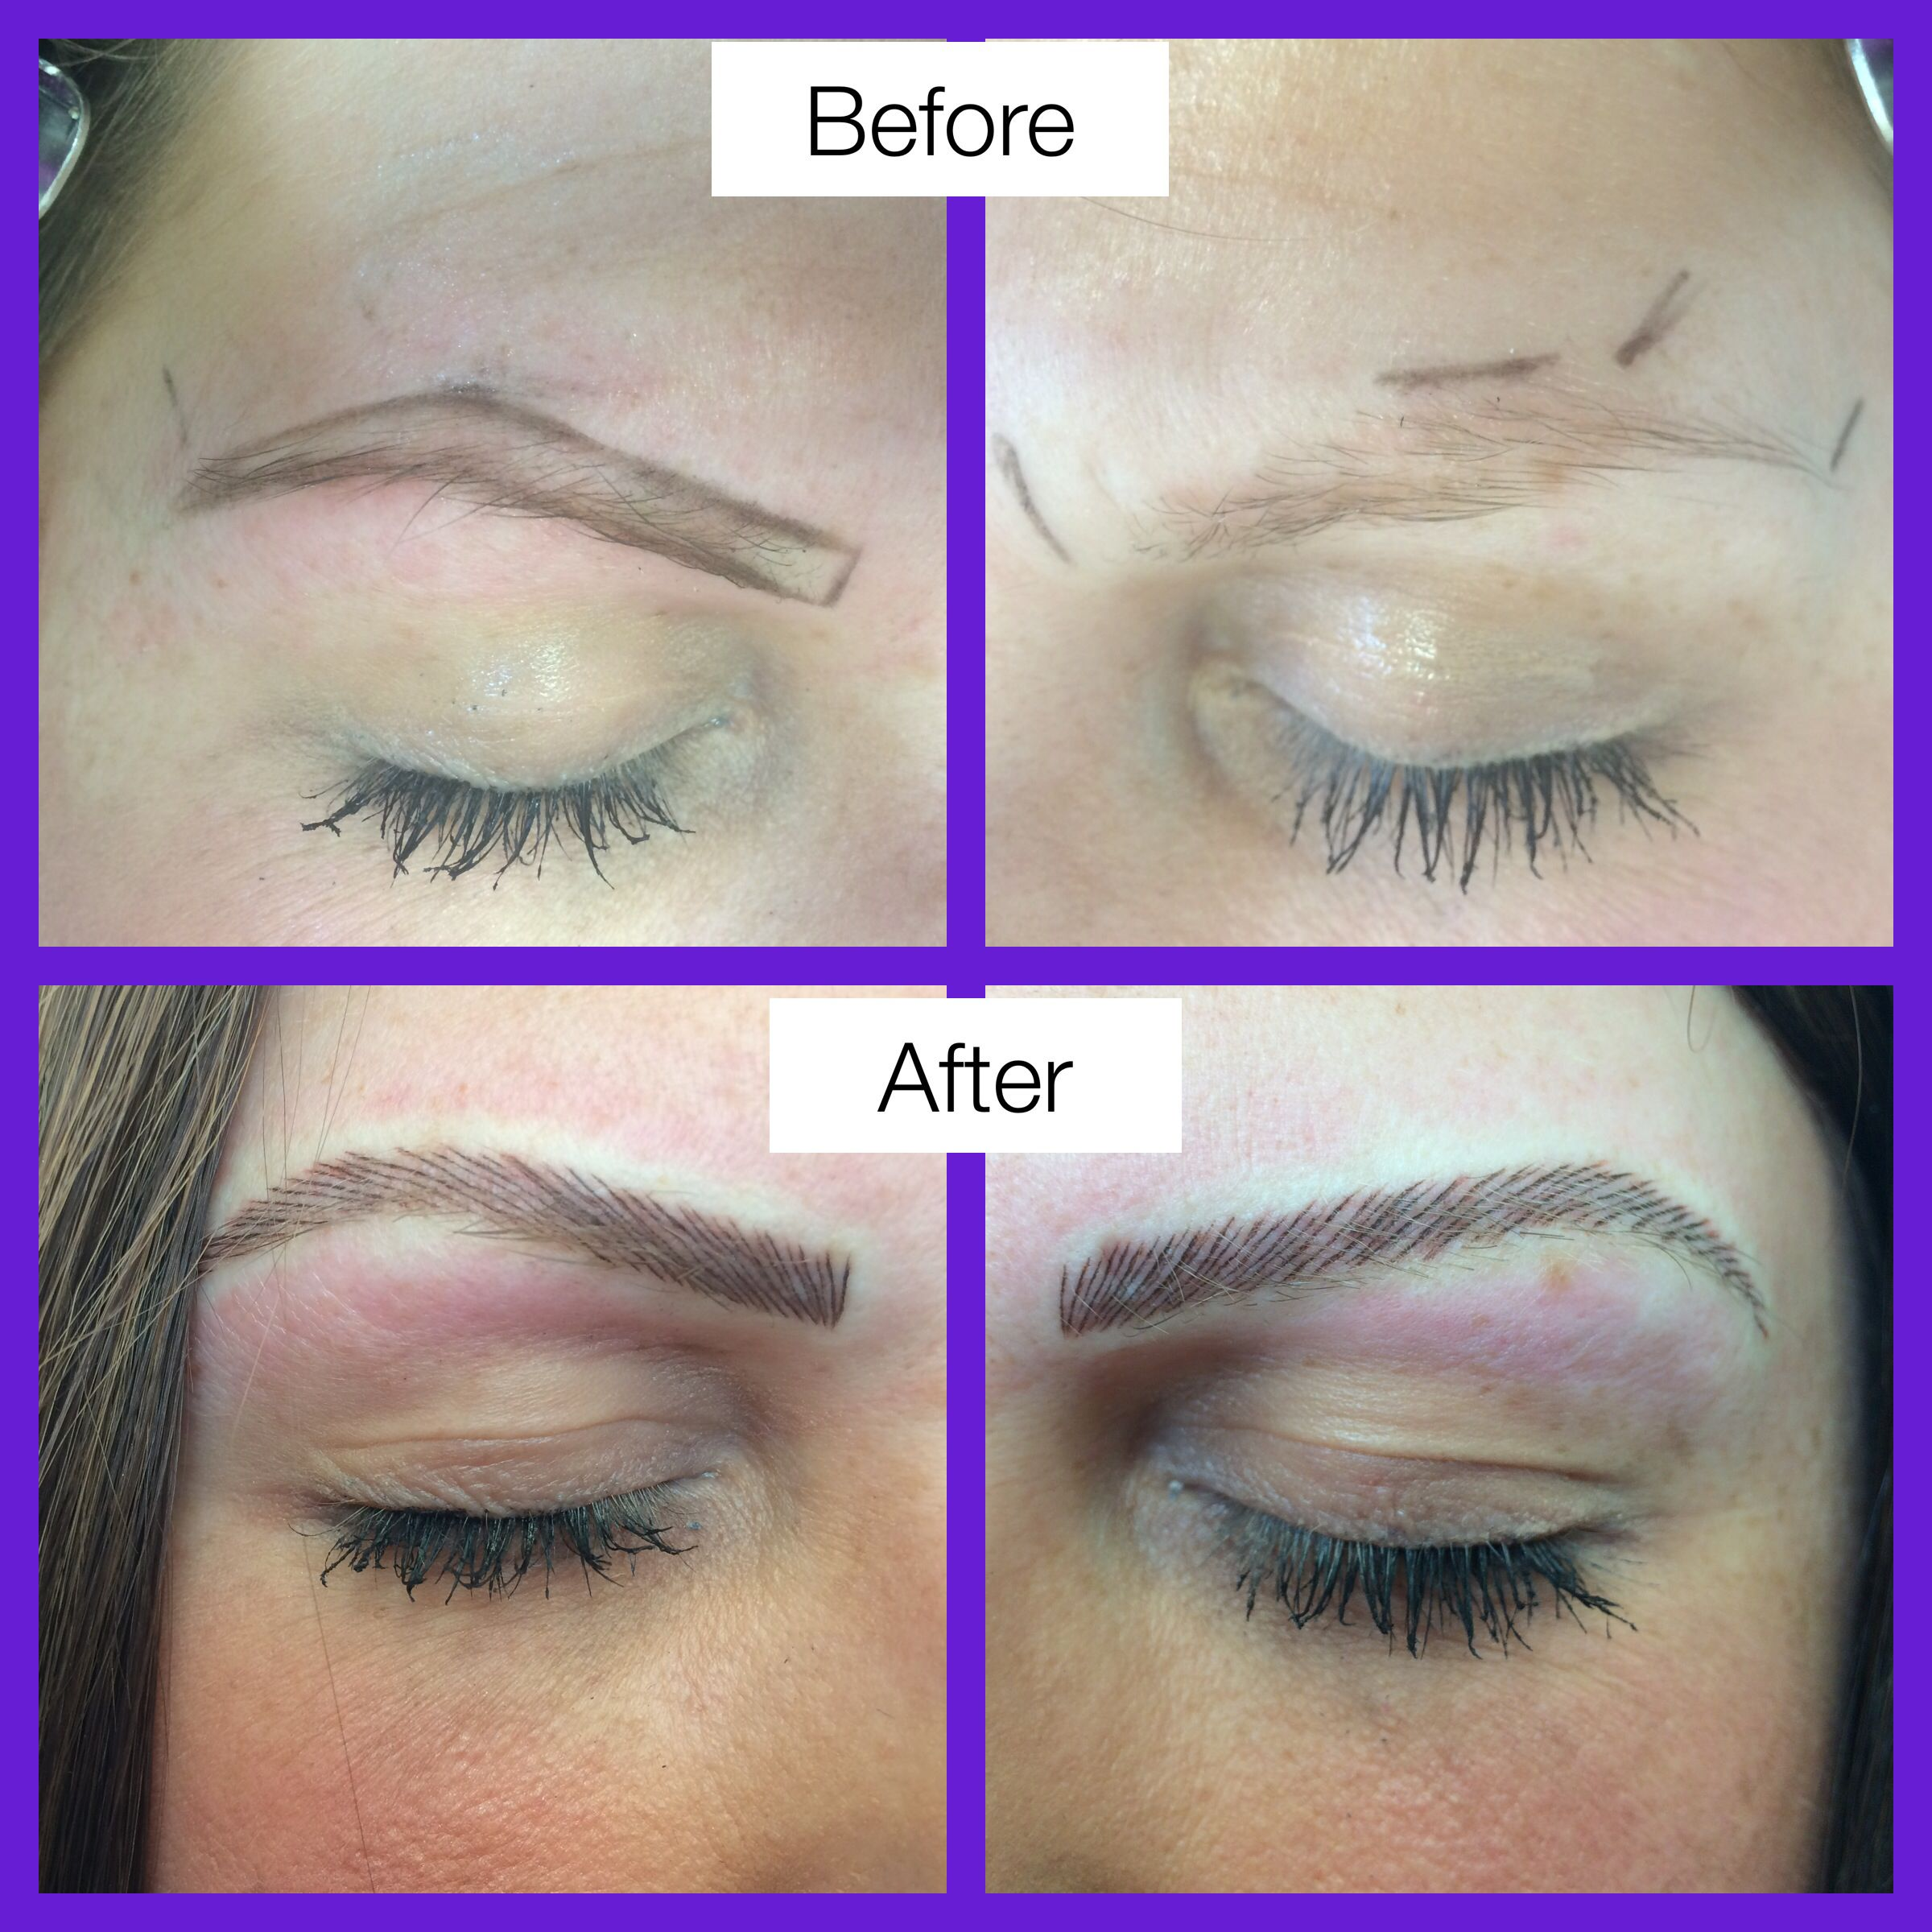 New semi permanent eyebrows hair stroke method  (These don't look